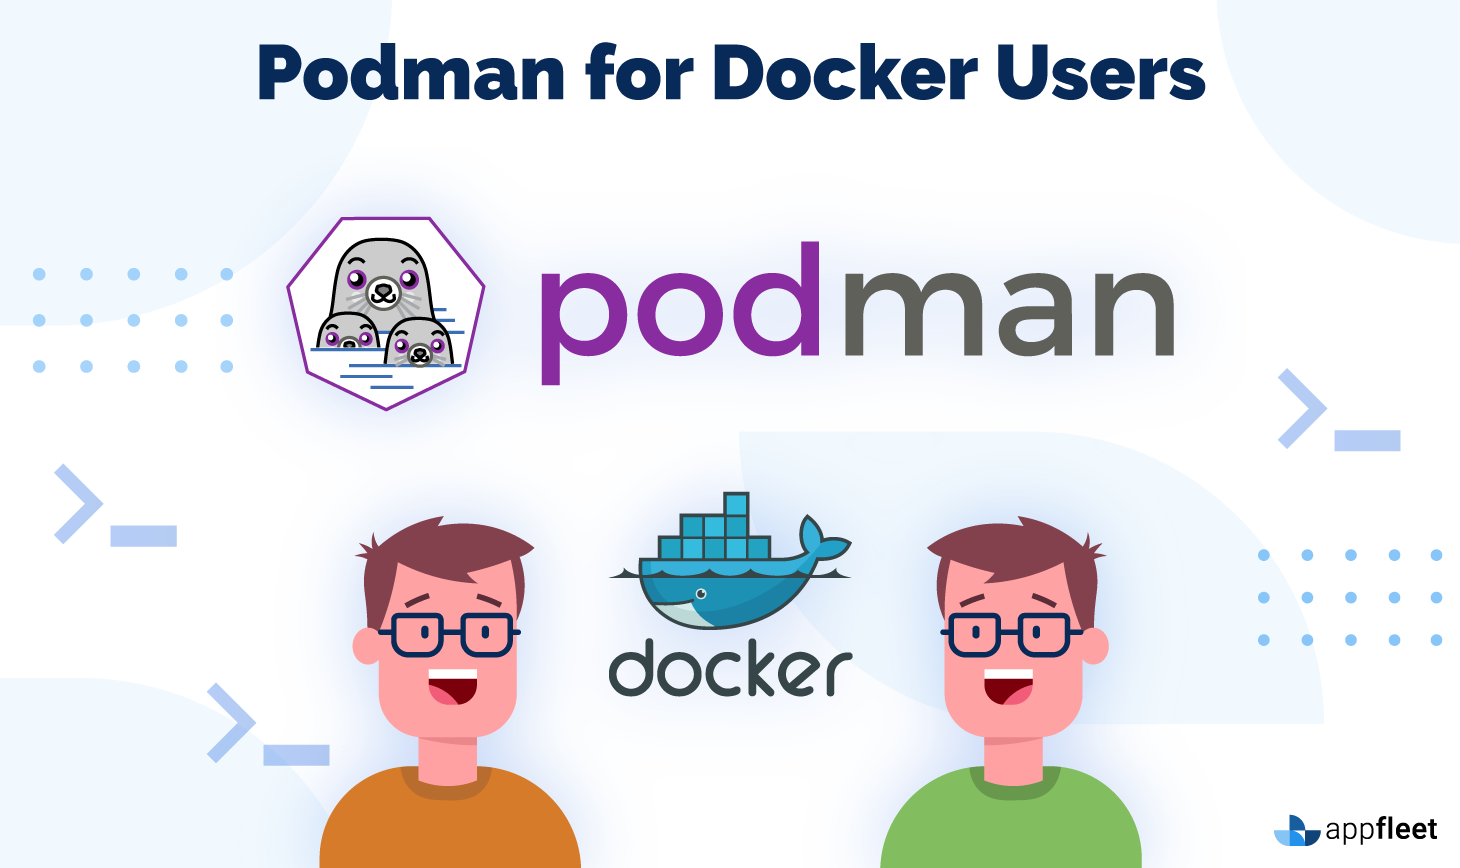 Podman for Docker Users